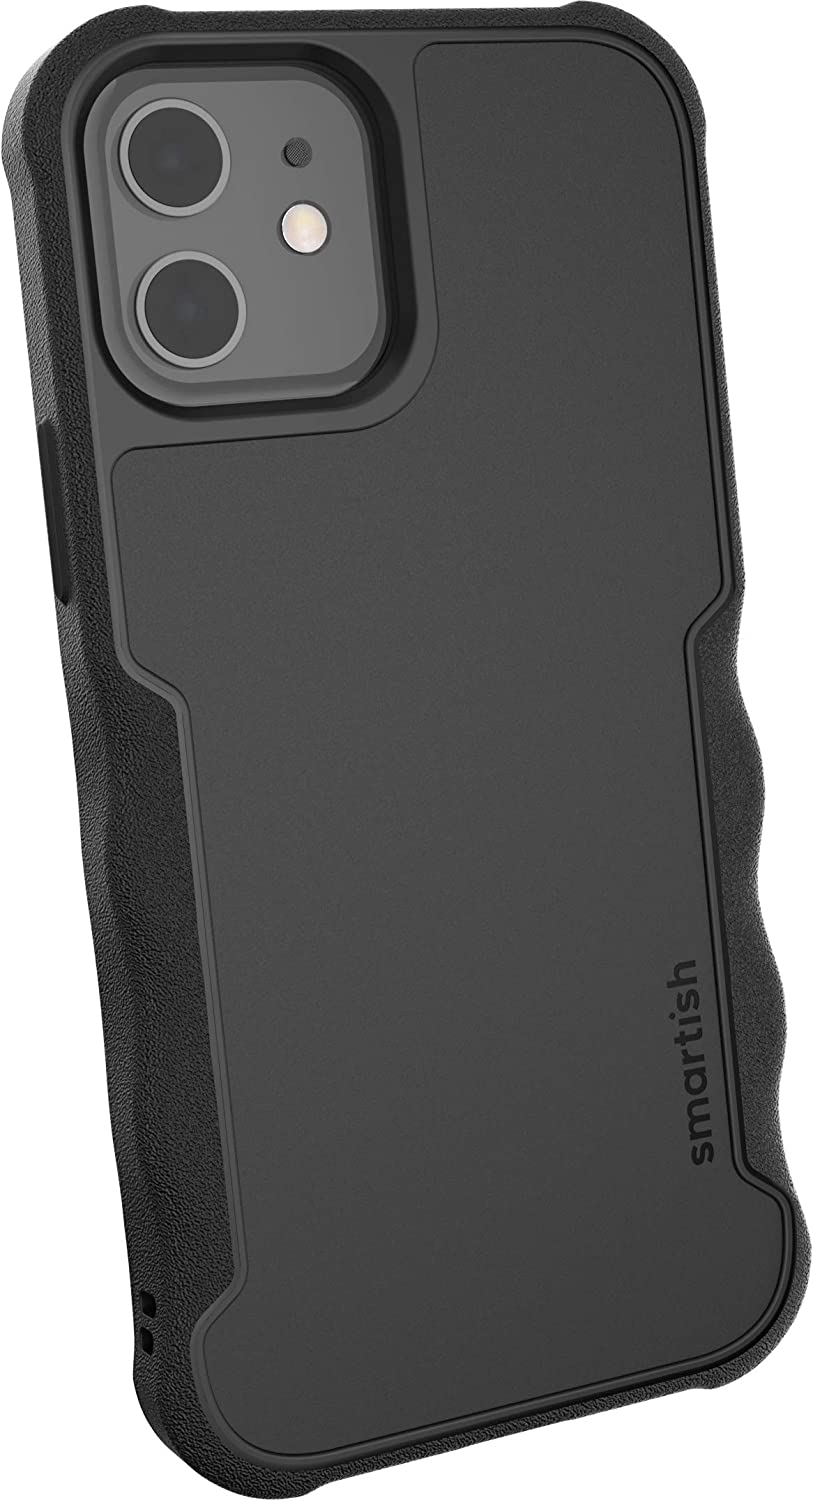 Smartish Armor Black Gripzilla Case for iPhone 12 and 12 Pro